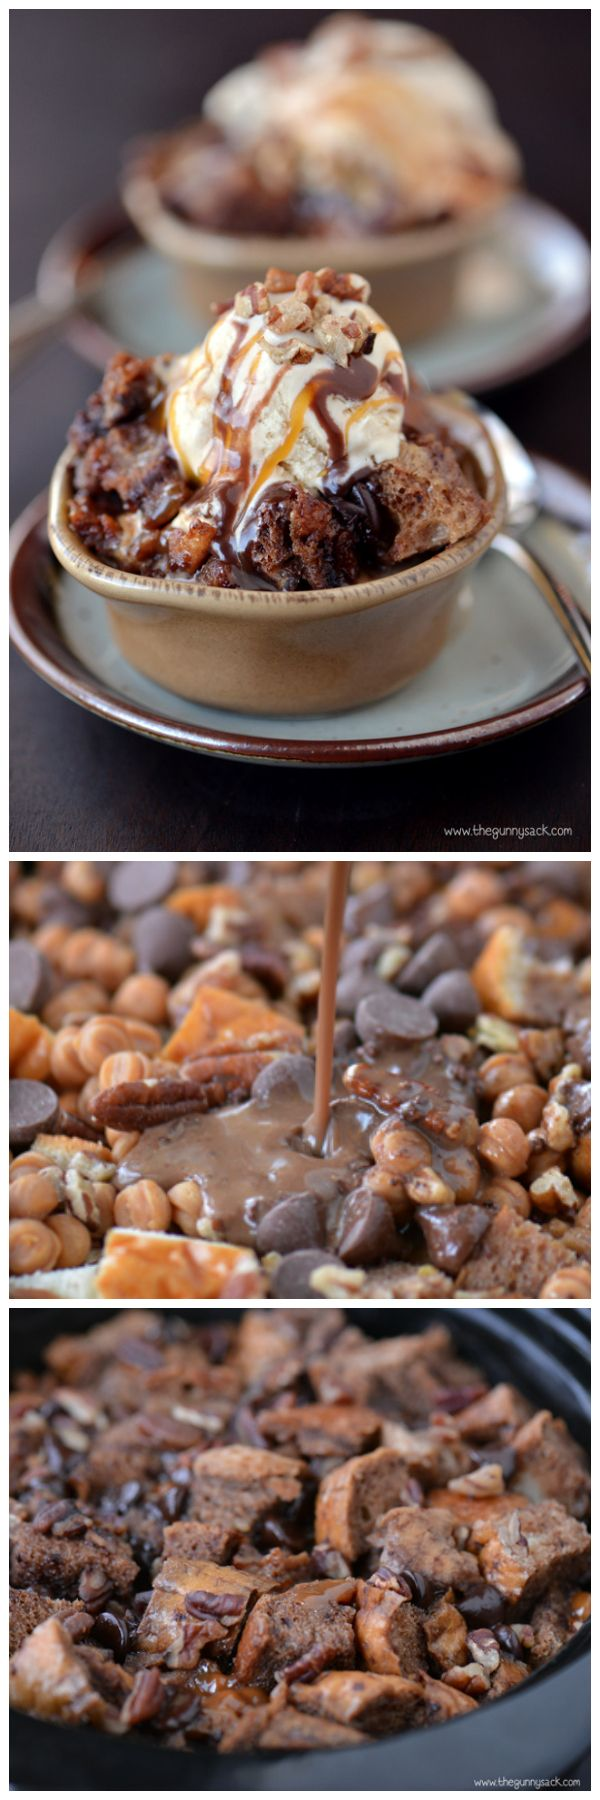 Slow Cooker Chocolate Turtle Bread Pudding is a warm, comforting dessert with chocolate, caramel and pecans. It's a crockpot recipe that everyone will love!